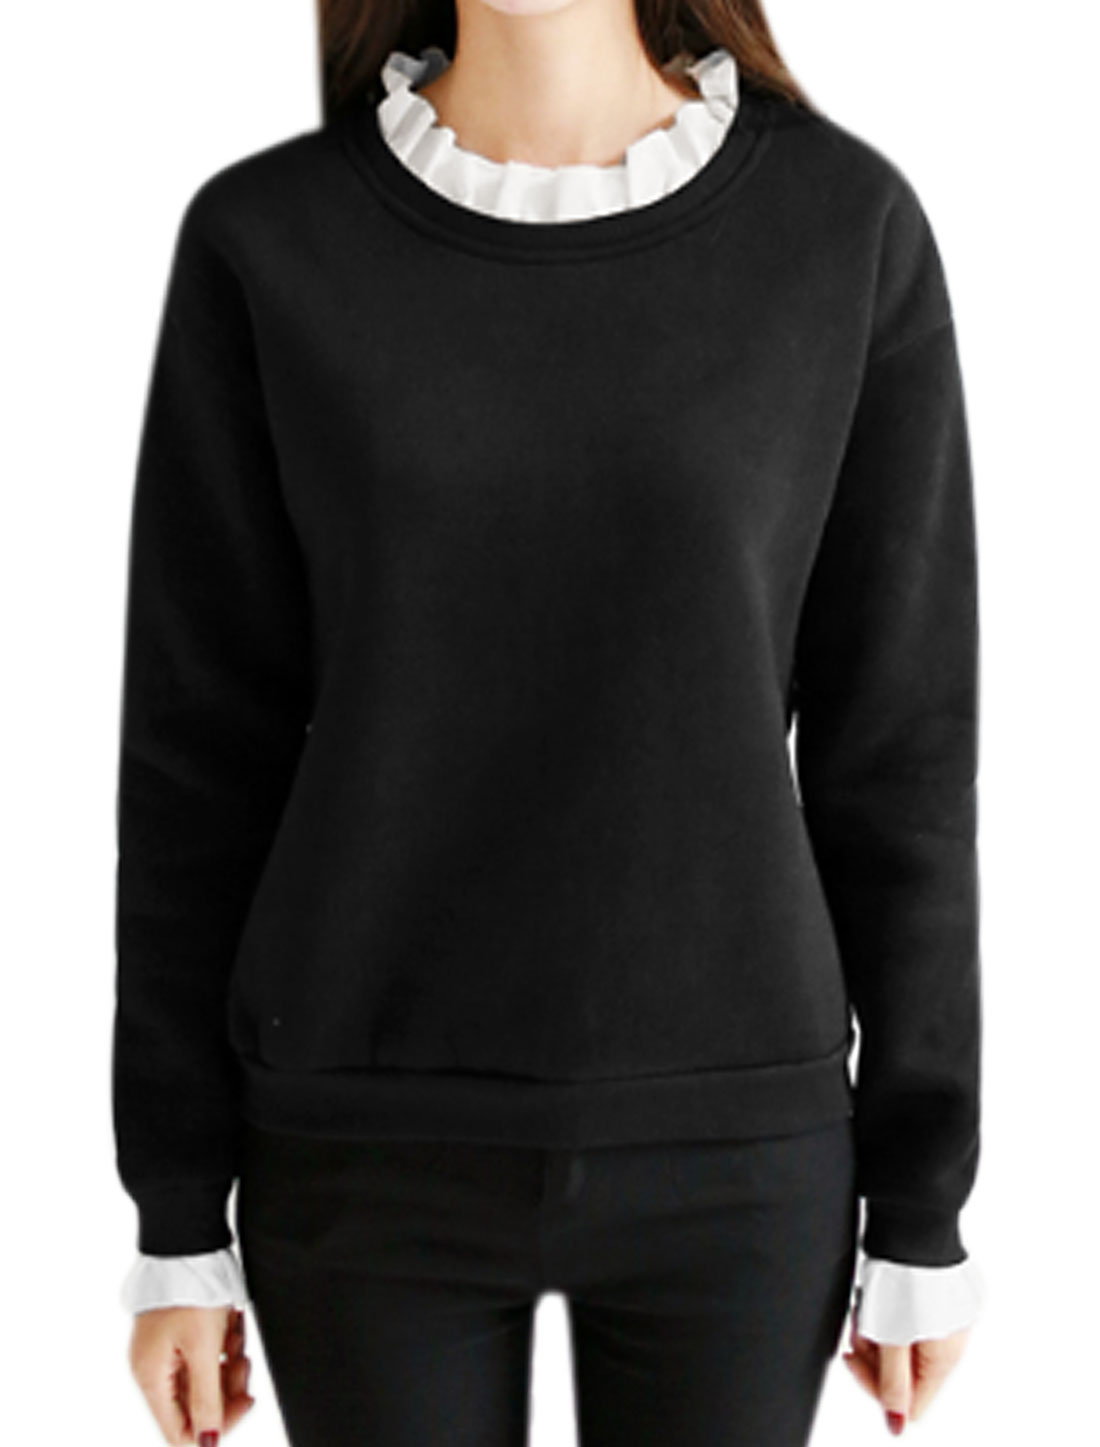 Women Ruffled Collar Soft Lined Paneled Sweatshirt Black XS